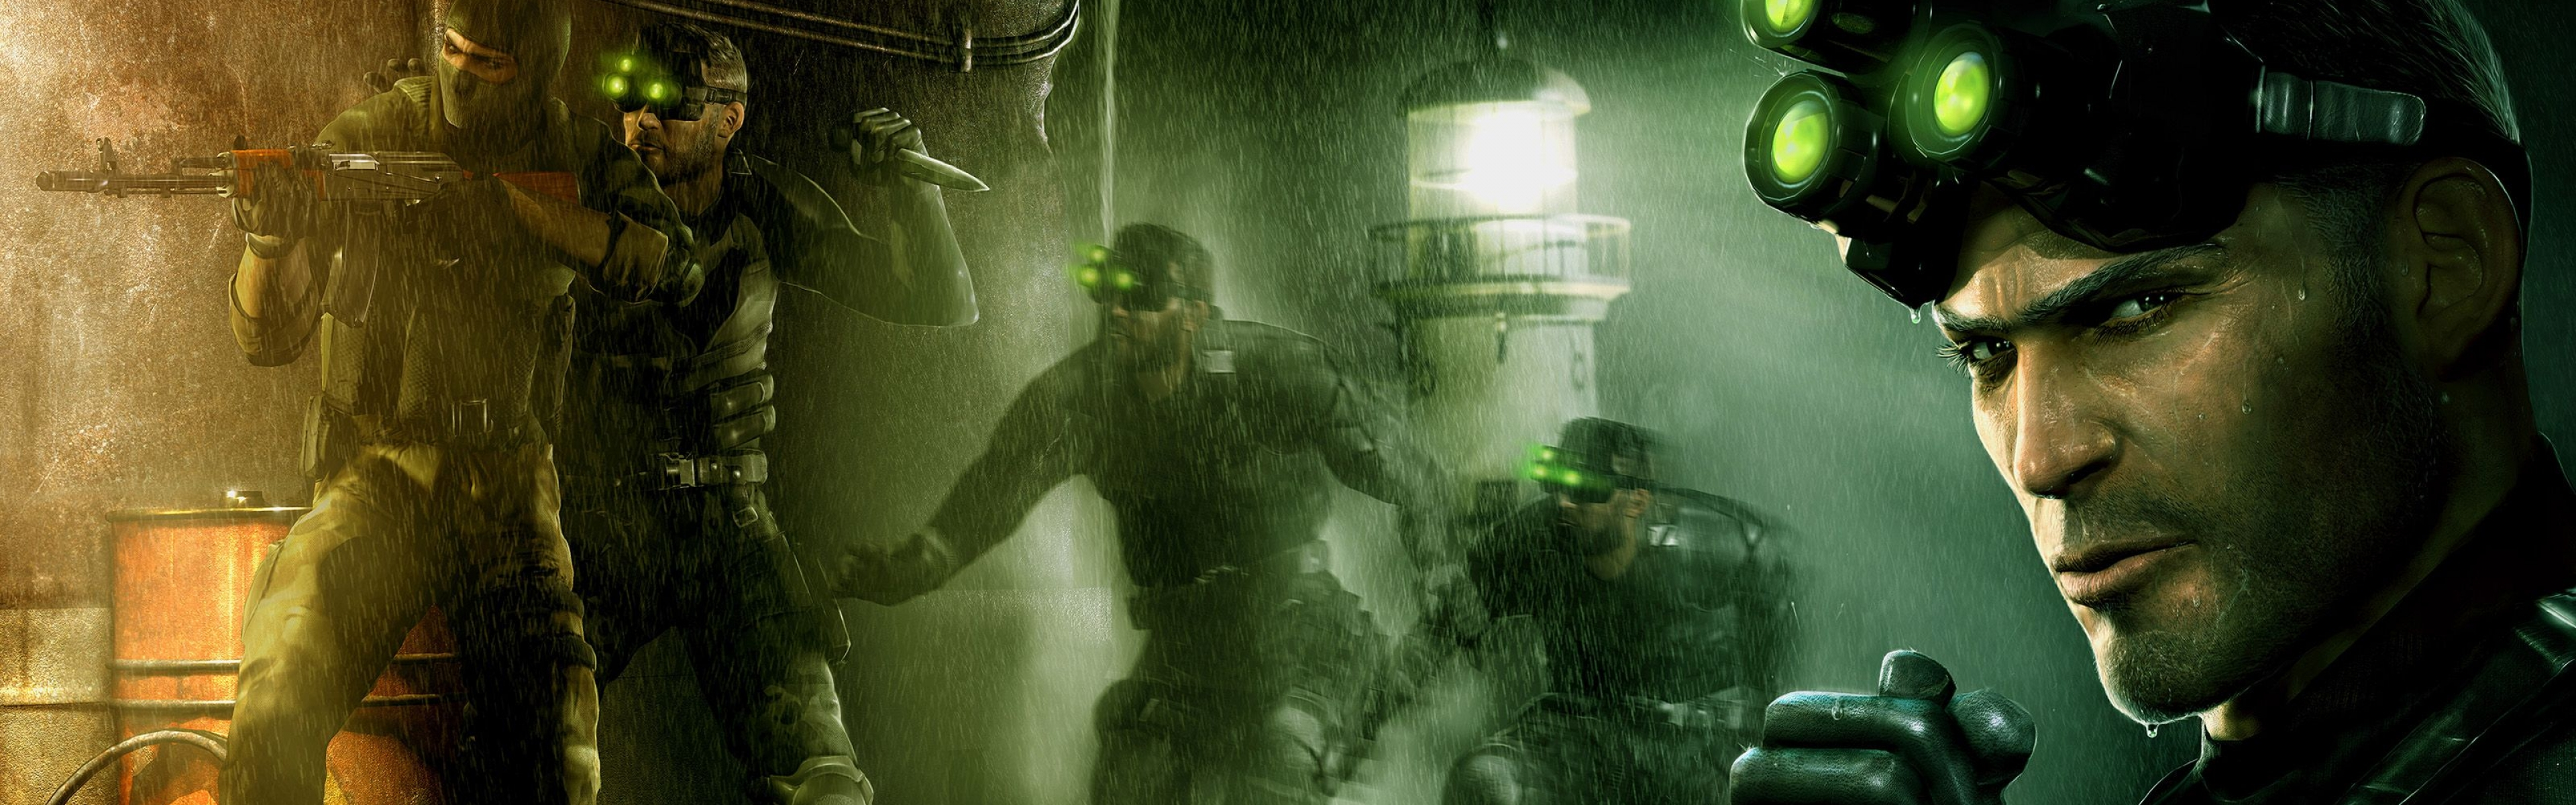 Splinter Cell Back Stab